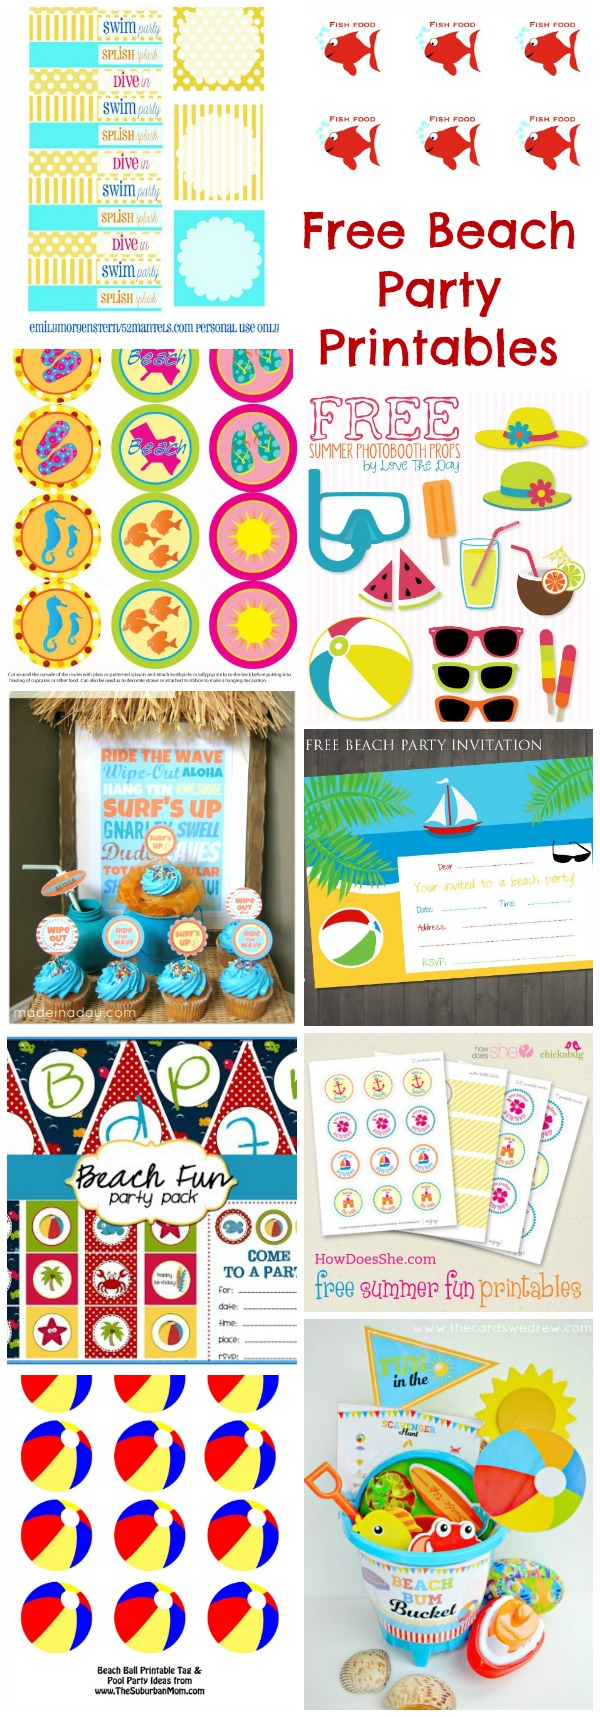 Beach Ball Party Printables Free